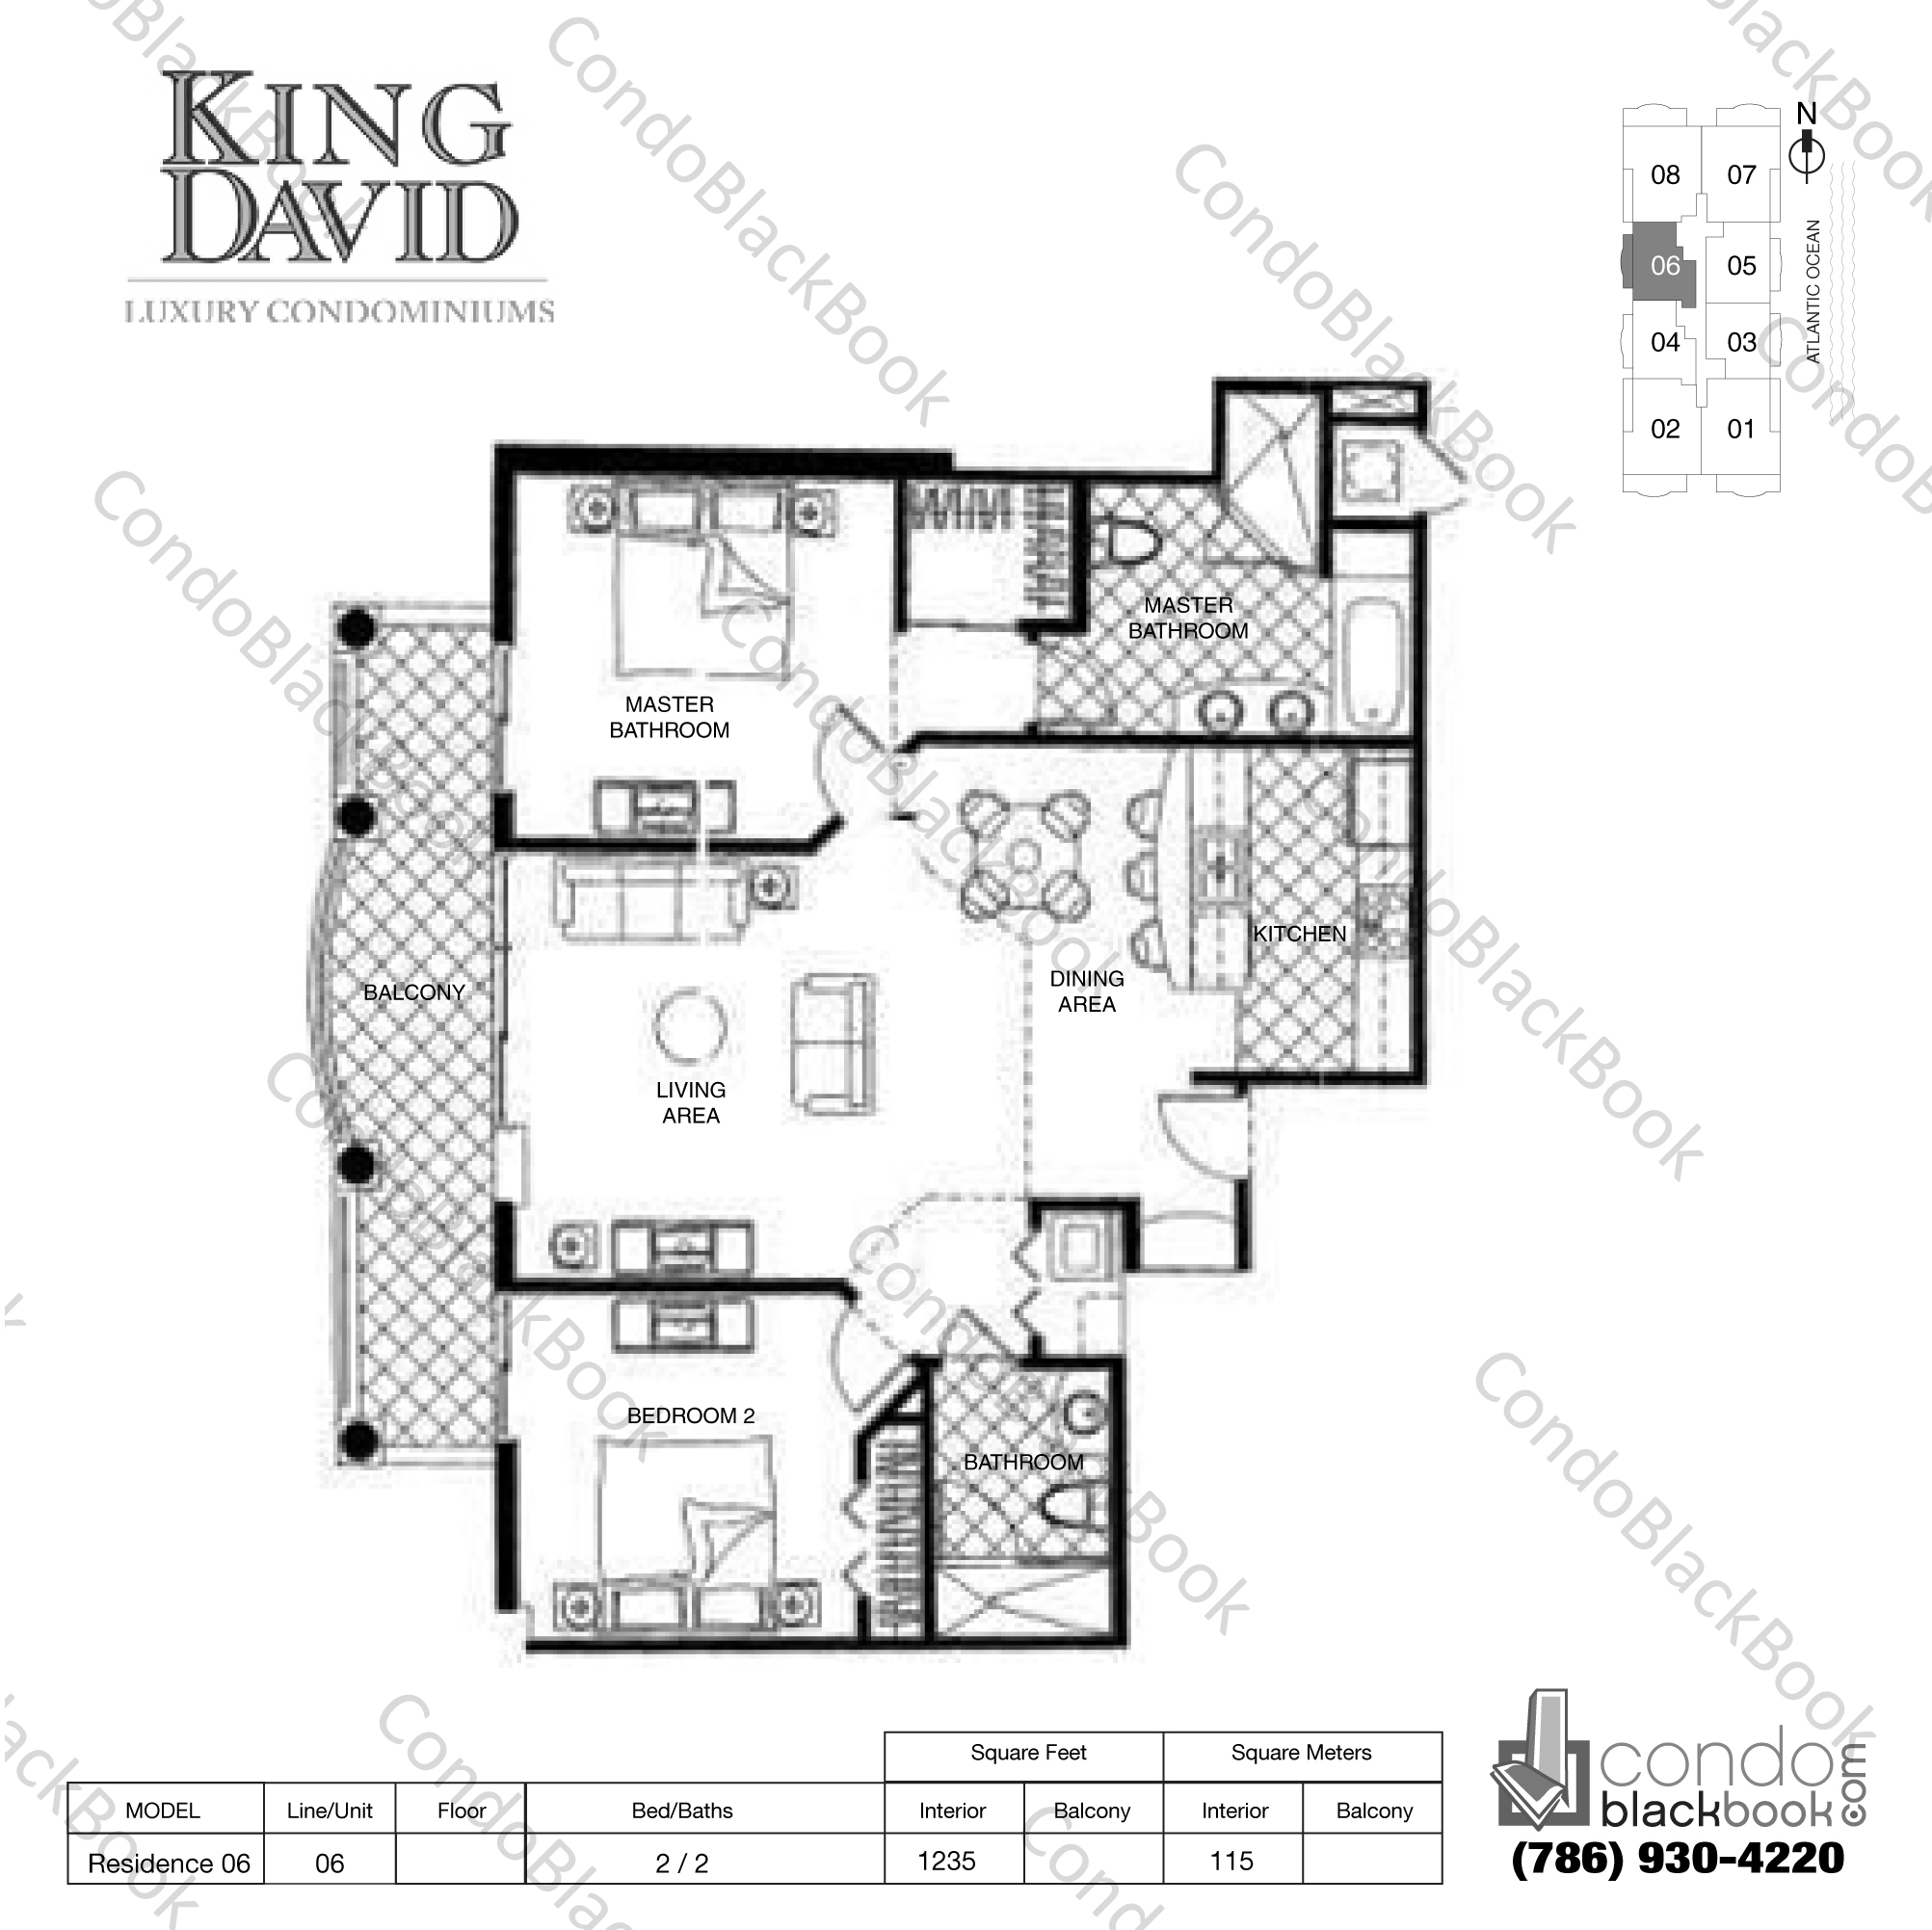 Floor plan for King David Sunny Isles Beach, model Residence 06, line 06, 2 / 2 bedrooms, 1235 sq ft